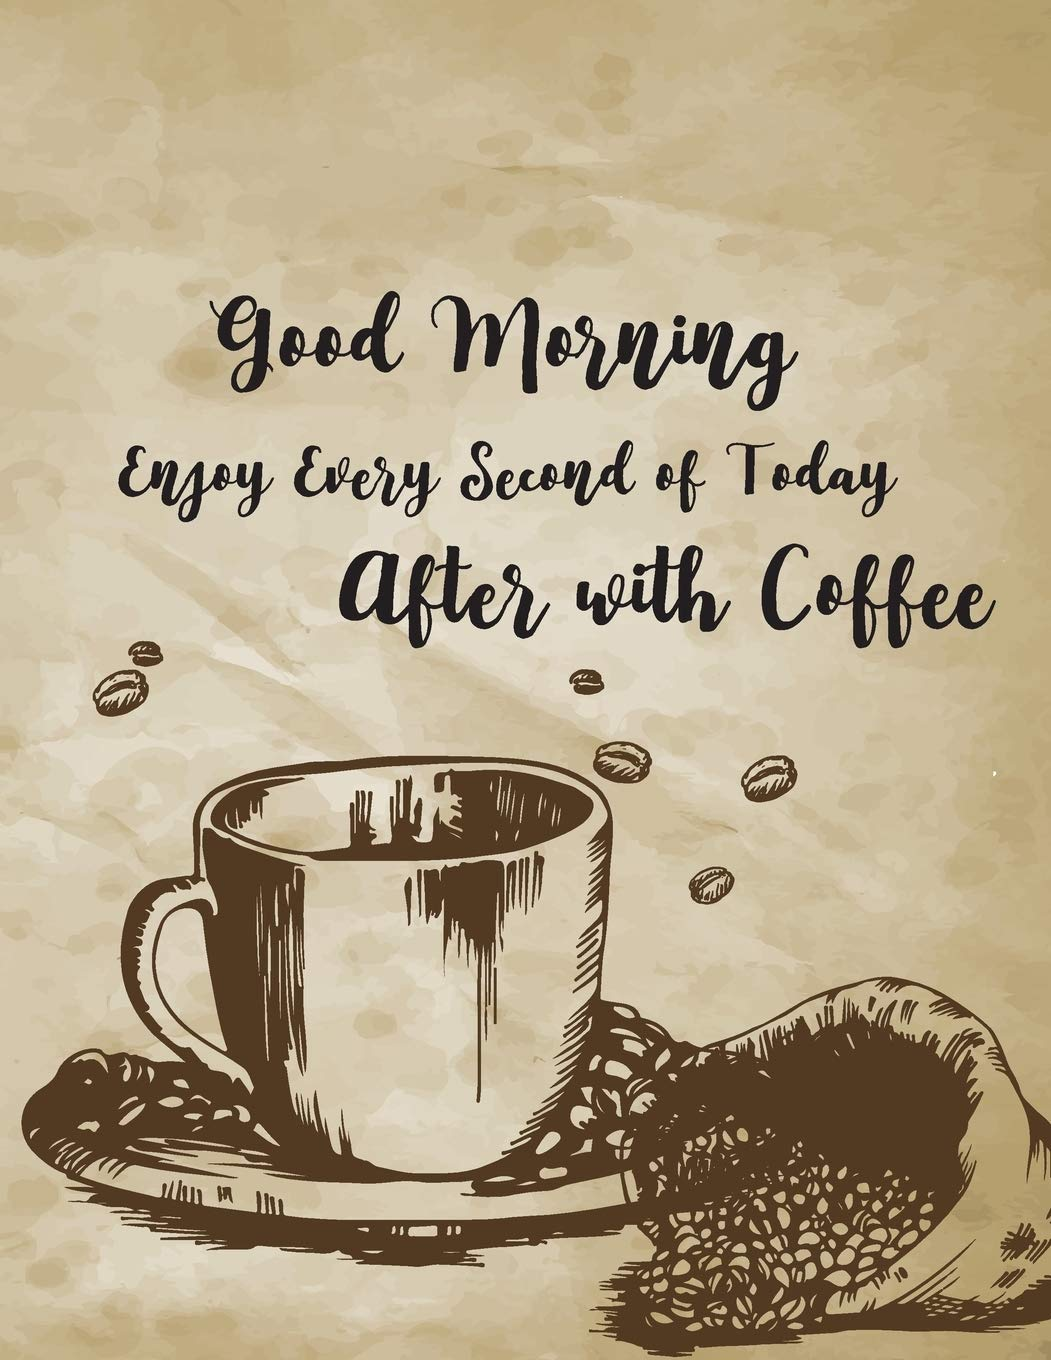 Buy Good Morning Coffee Quotes Budget Income And Bill Payments Expense Tracker Weekly Monthly Paying Off Debts Organizer Planning Household Budget Savings Undated Start Any Time Book Online At